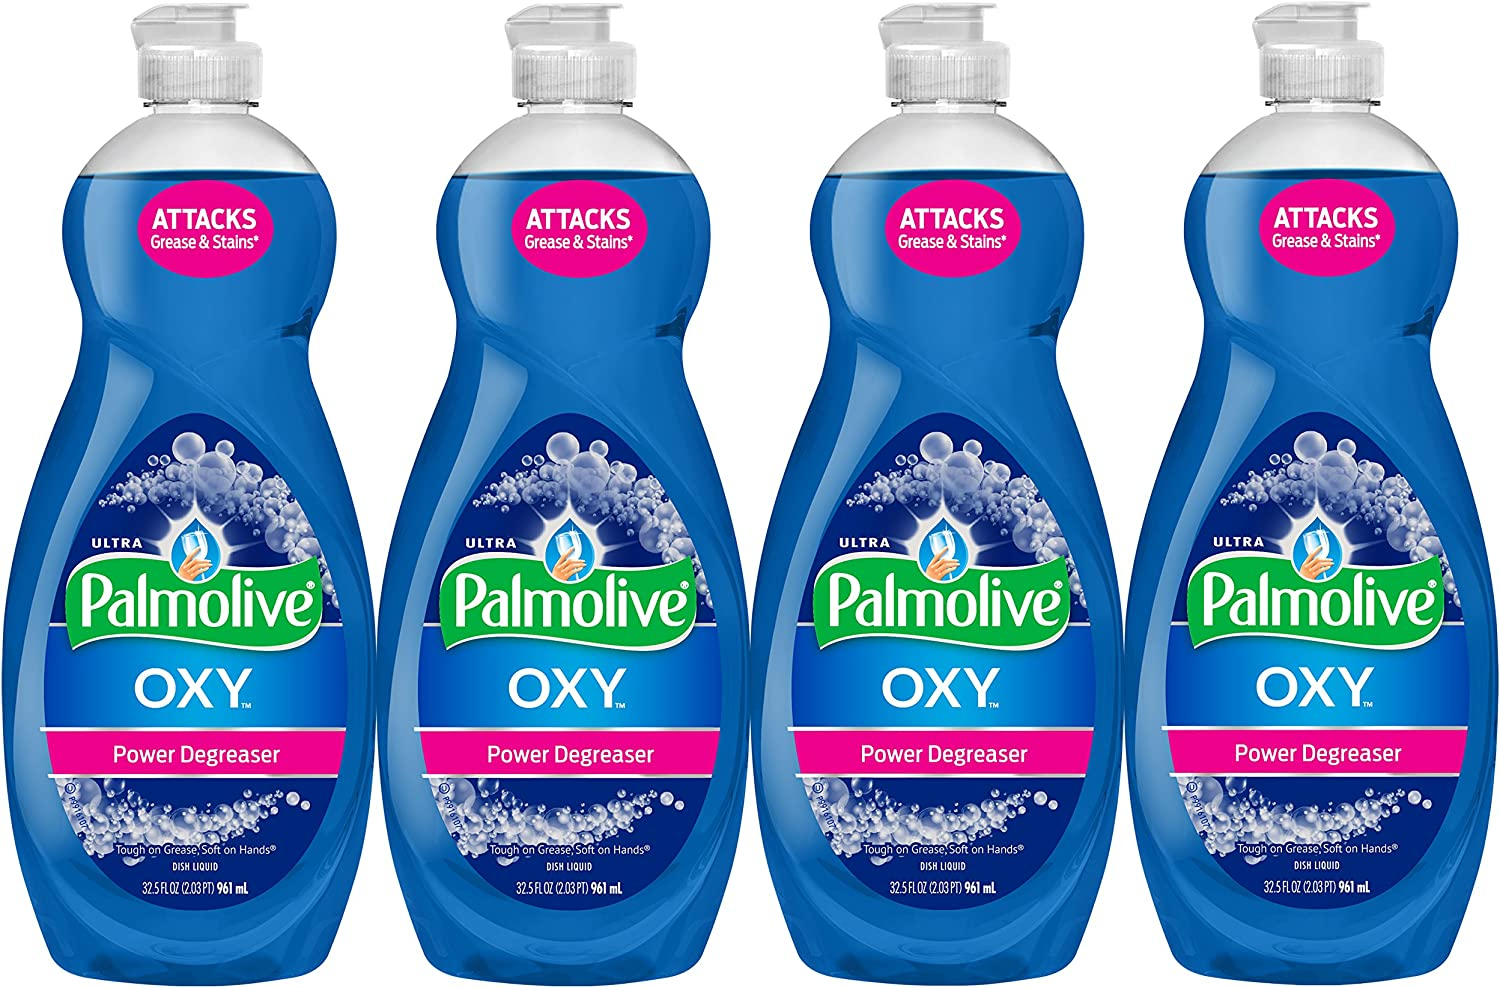 Palmolive Ultra Dish Soap Oxy Power Degreaser, 32.5 oz - 4 Pack: Health & Personal Care